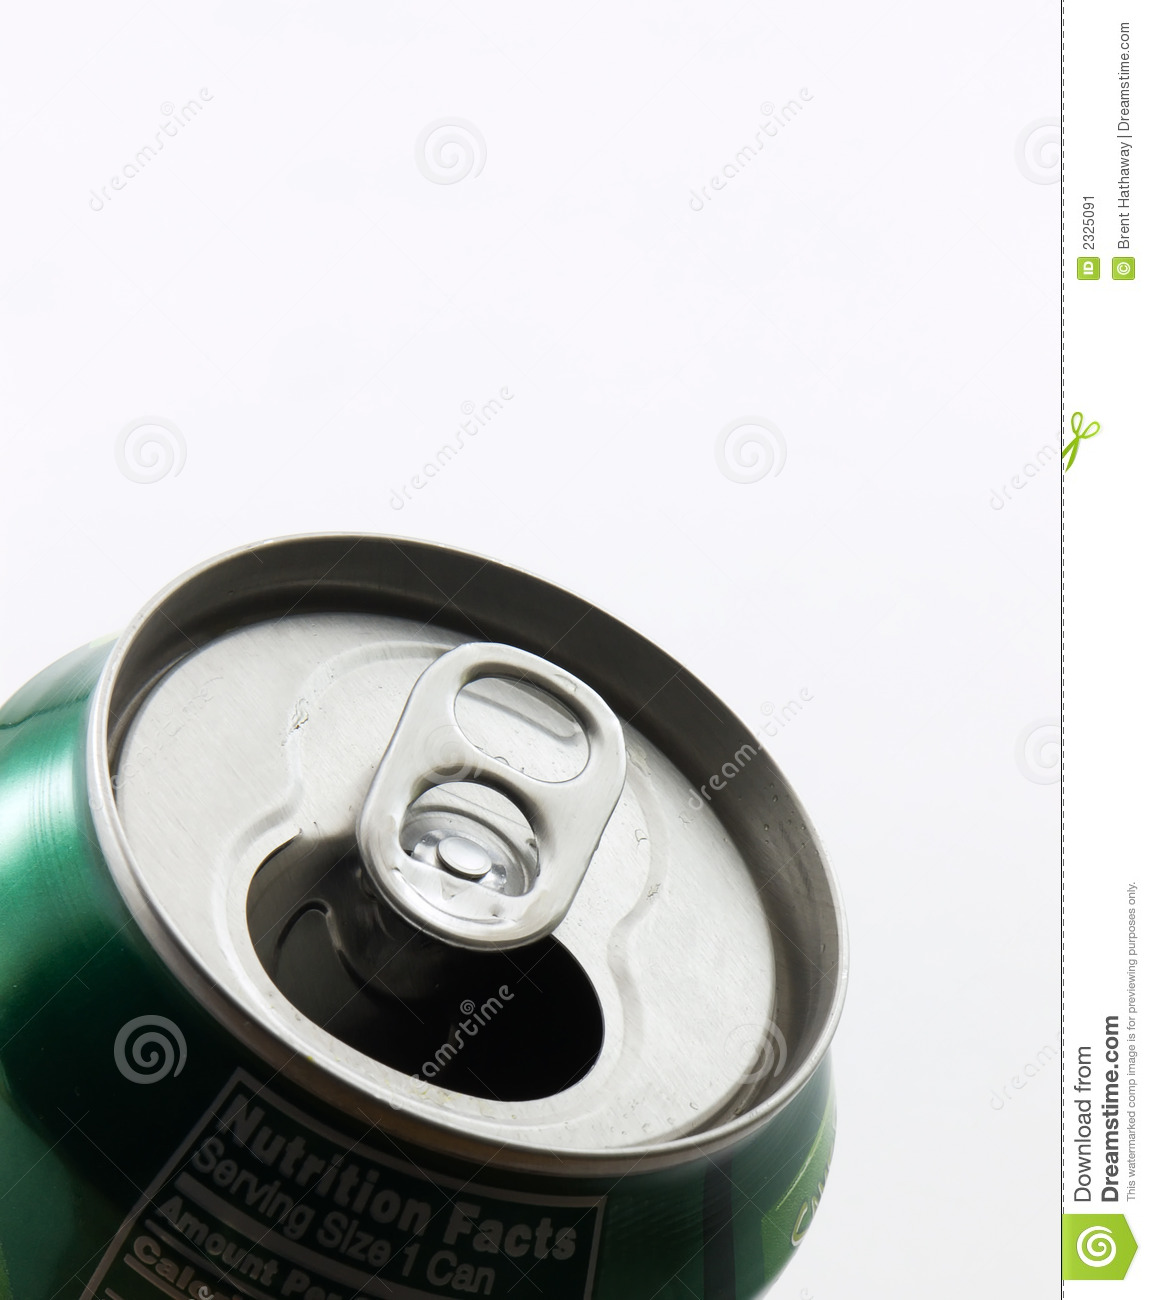 Soda Can Top Stock Image. Image Of Refreshments, Fizzy